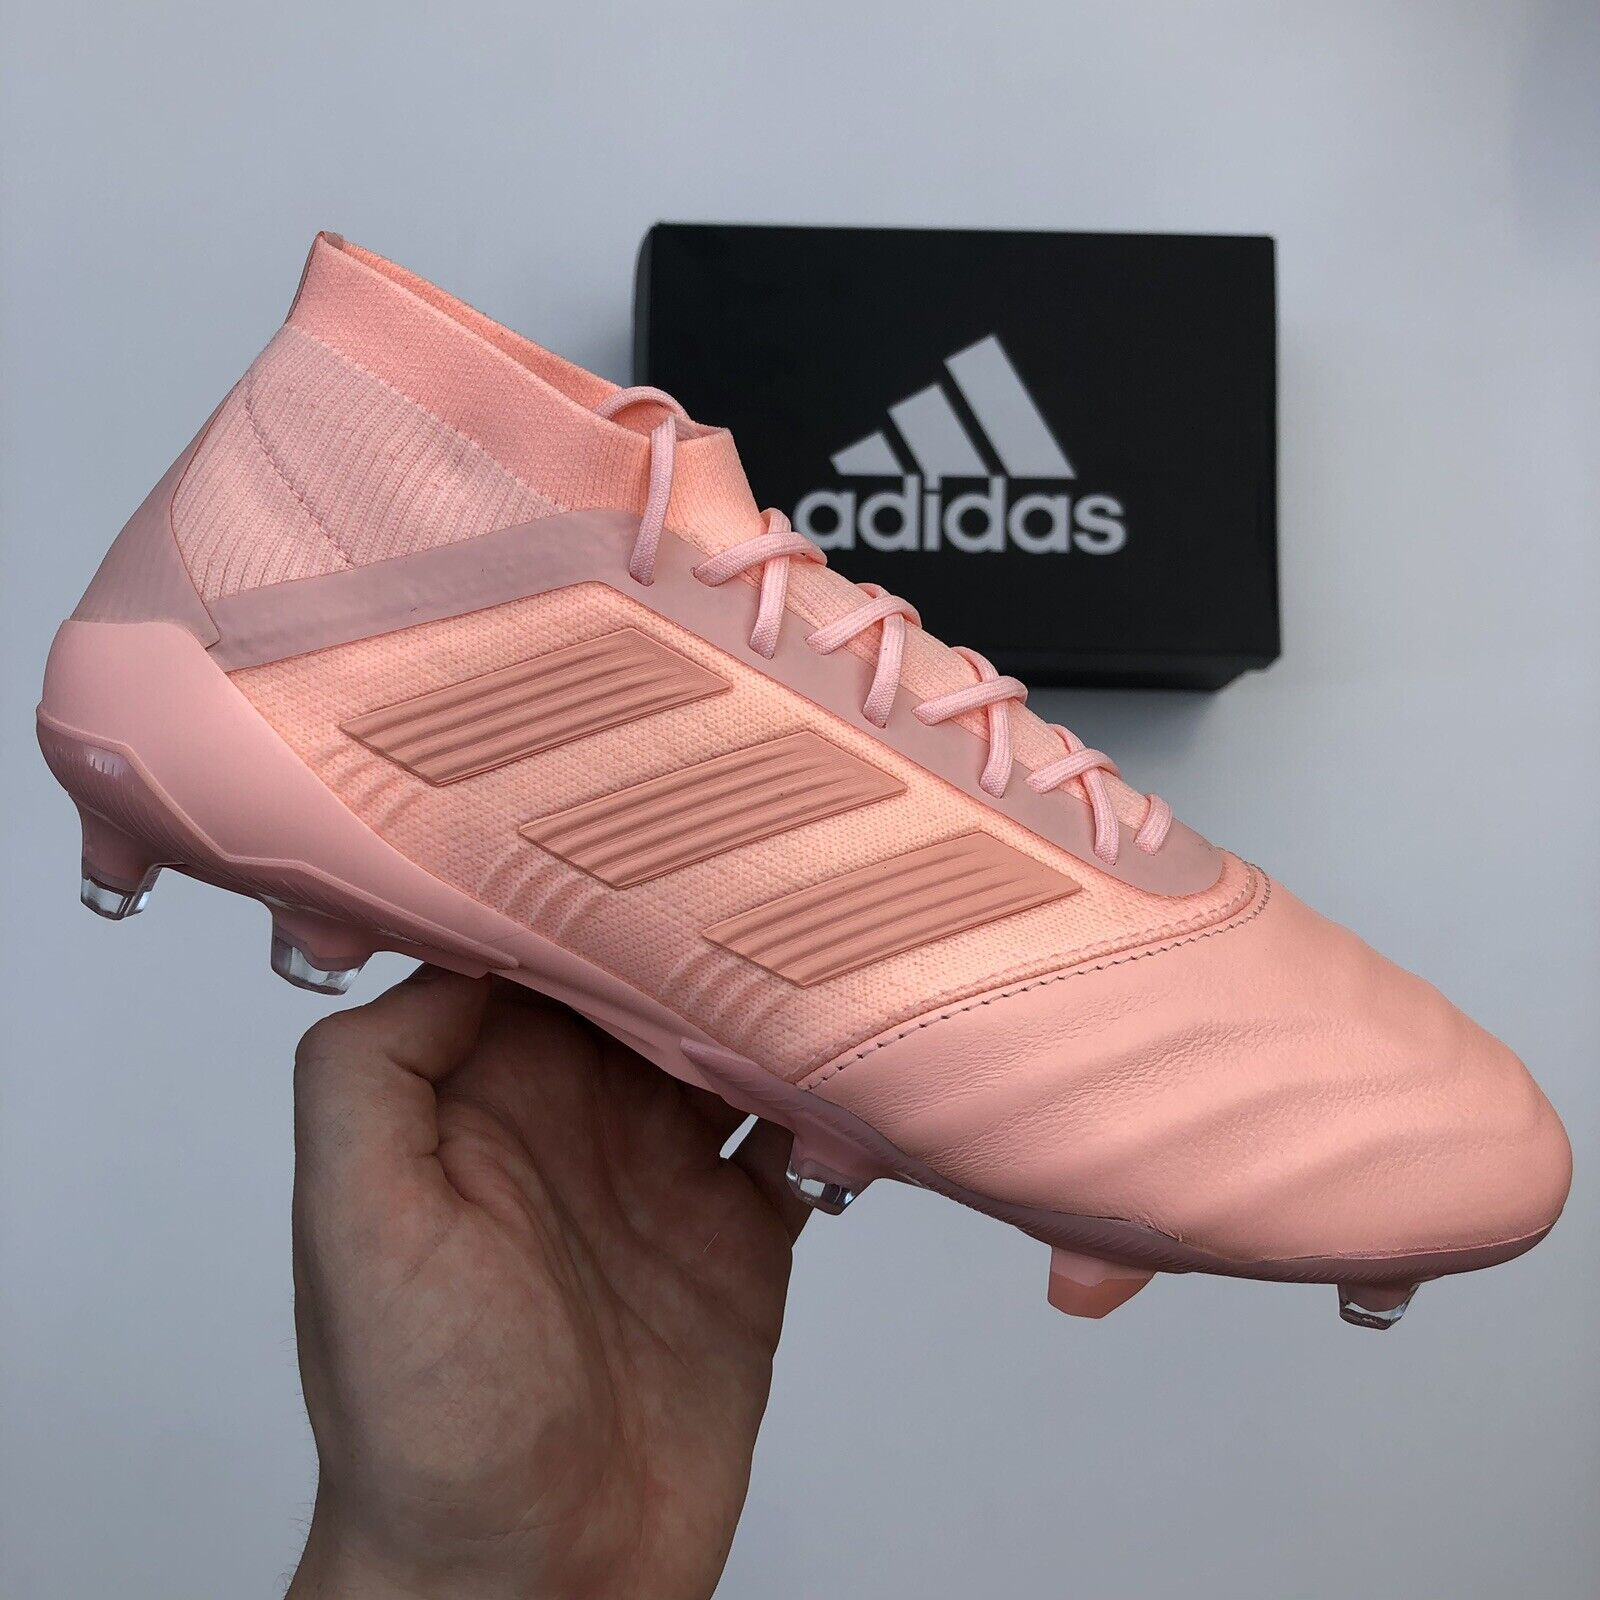 ADIDAS ProugeATOR 18.1 FG cuir rose FOOTBALL bottes (D96601) Taille UK9 US9.5